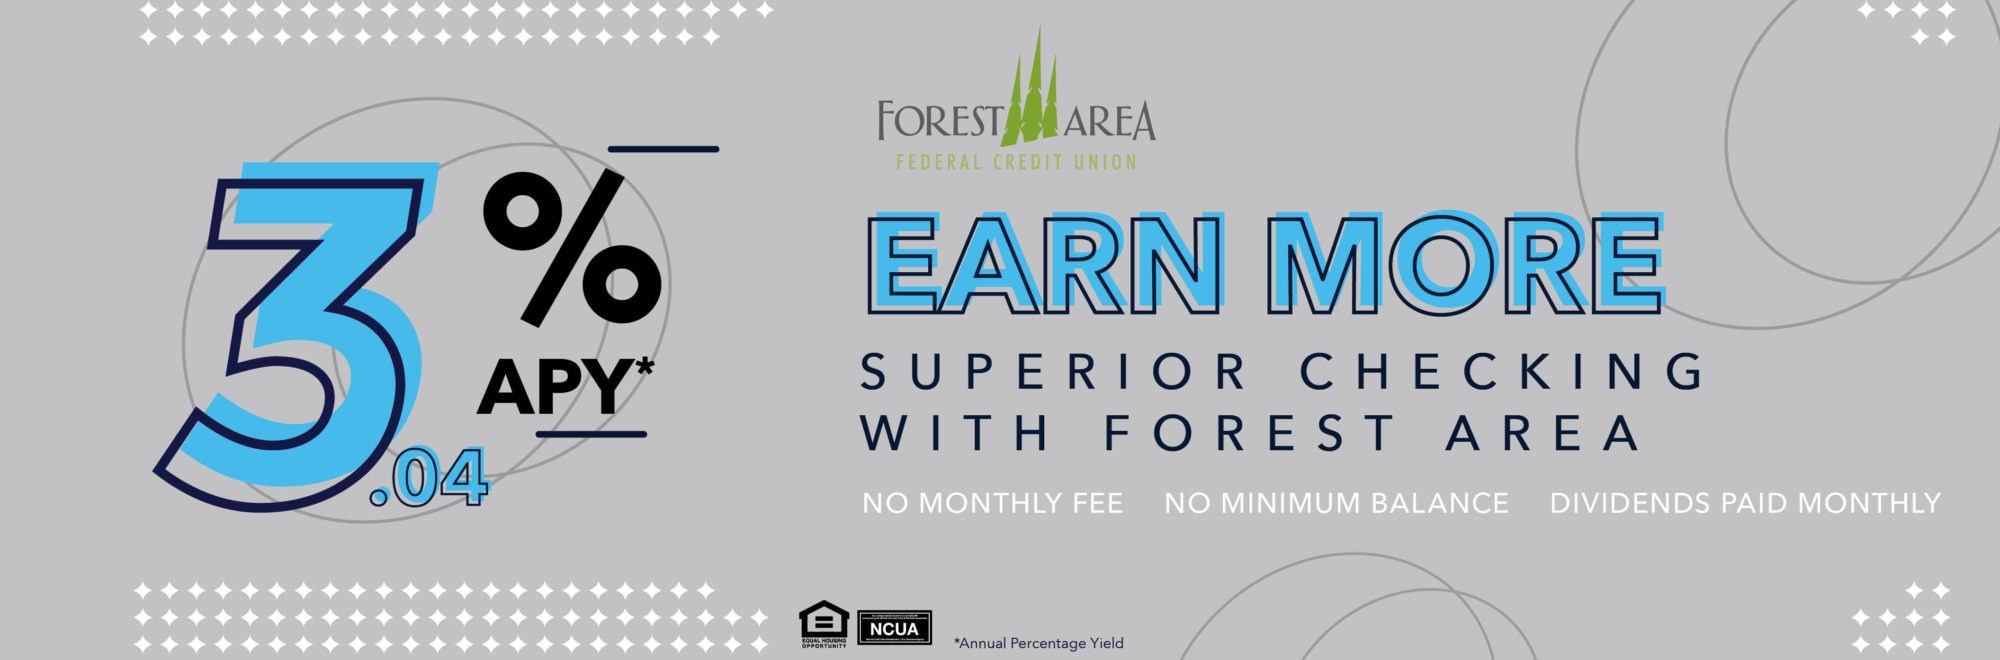 Earn 3.04% Annual Percentage Yield with Superior Checking. No monthly fee or minimum balance. Dividends paid monthly.